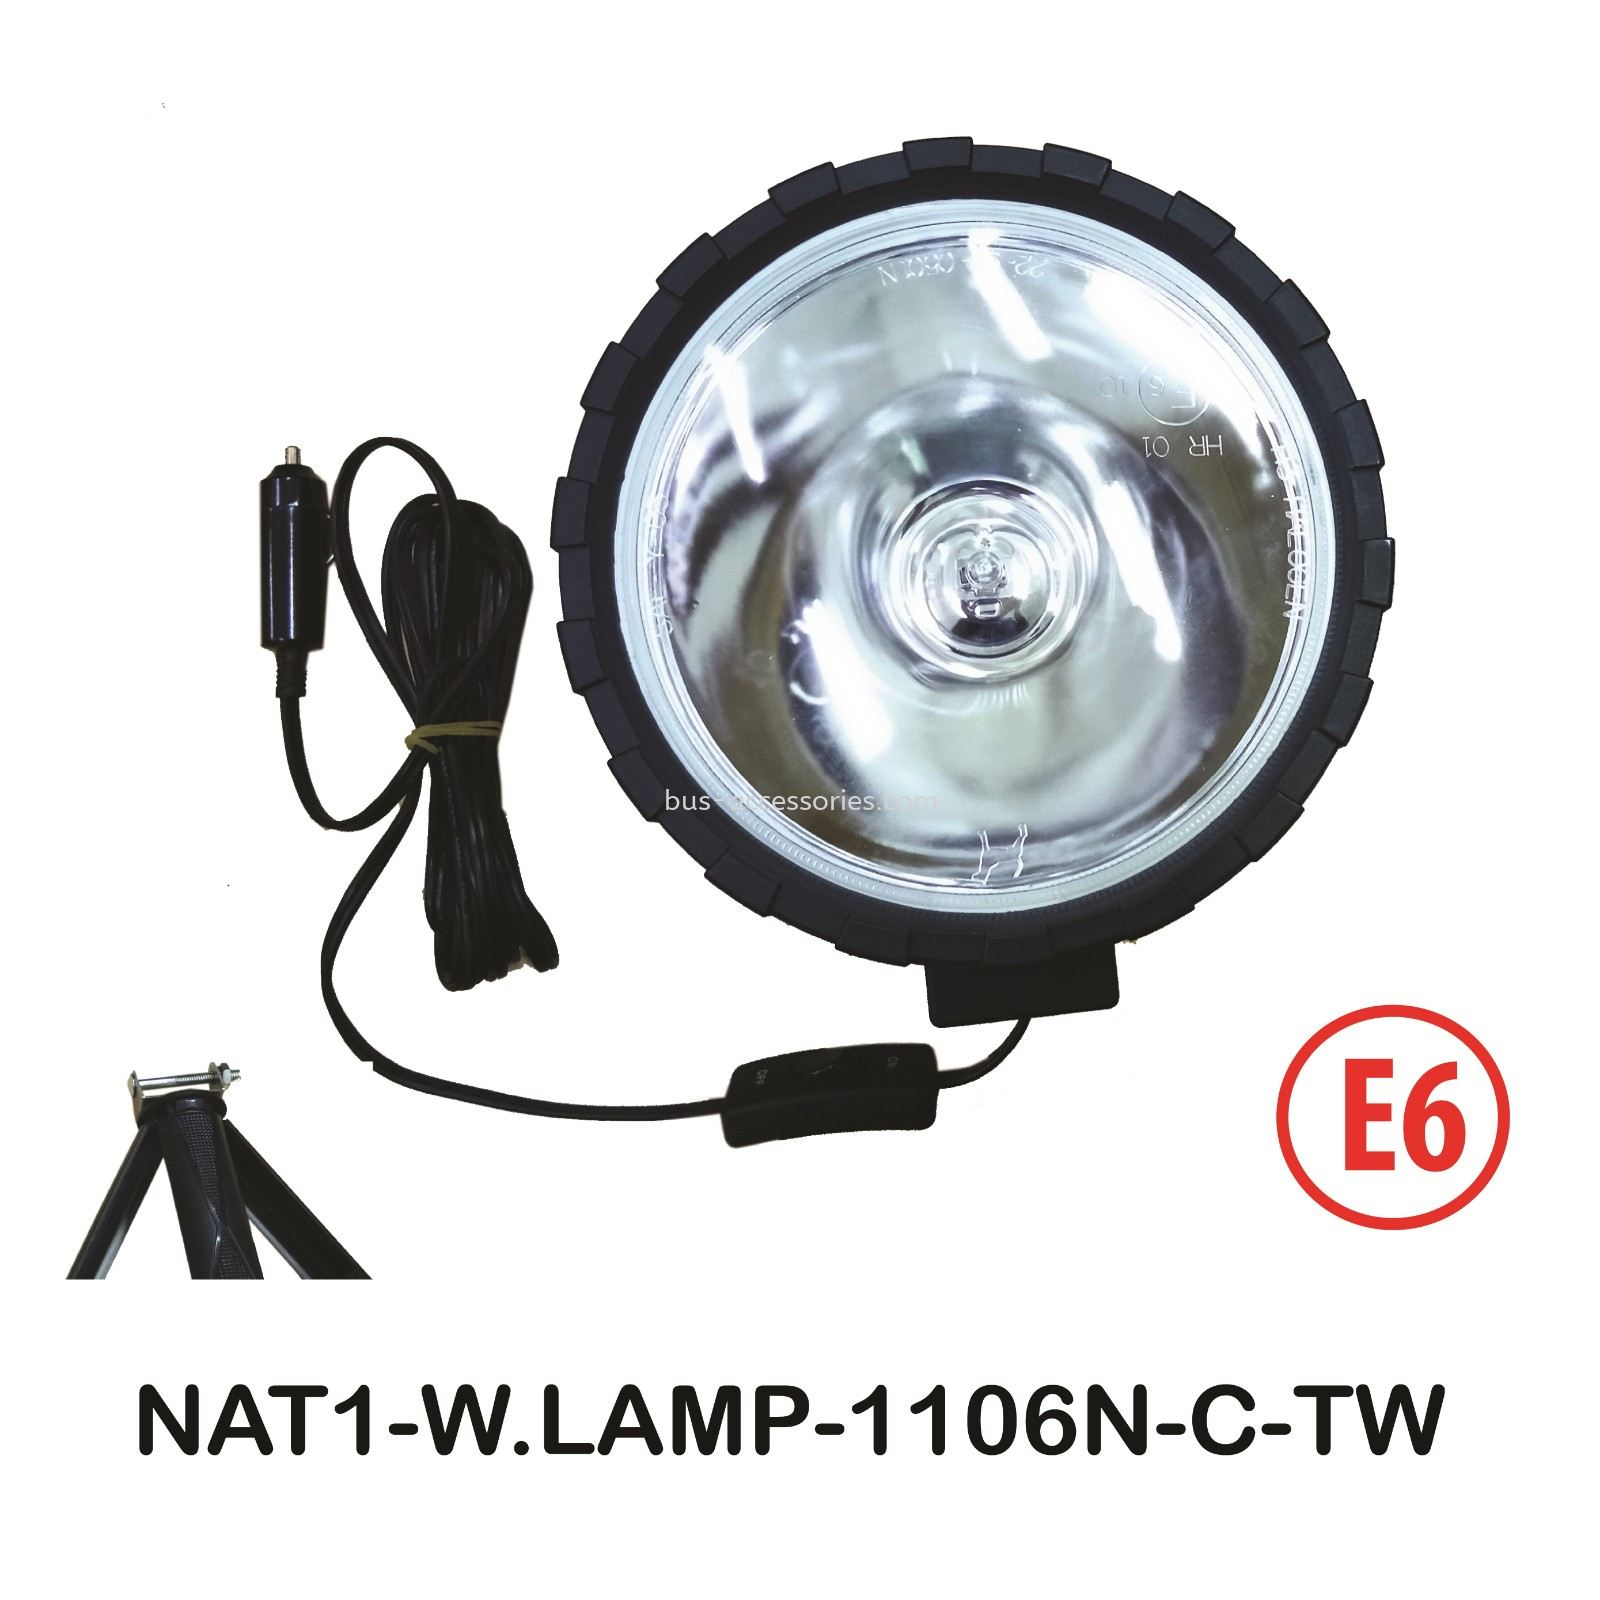 WORKING LAMP (H312V55W)CLEAR LENS